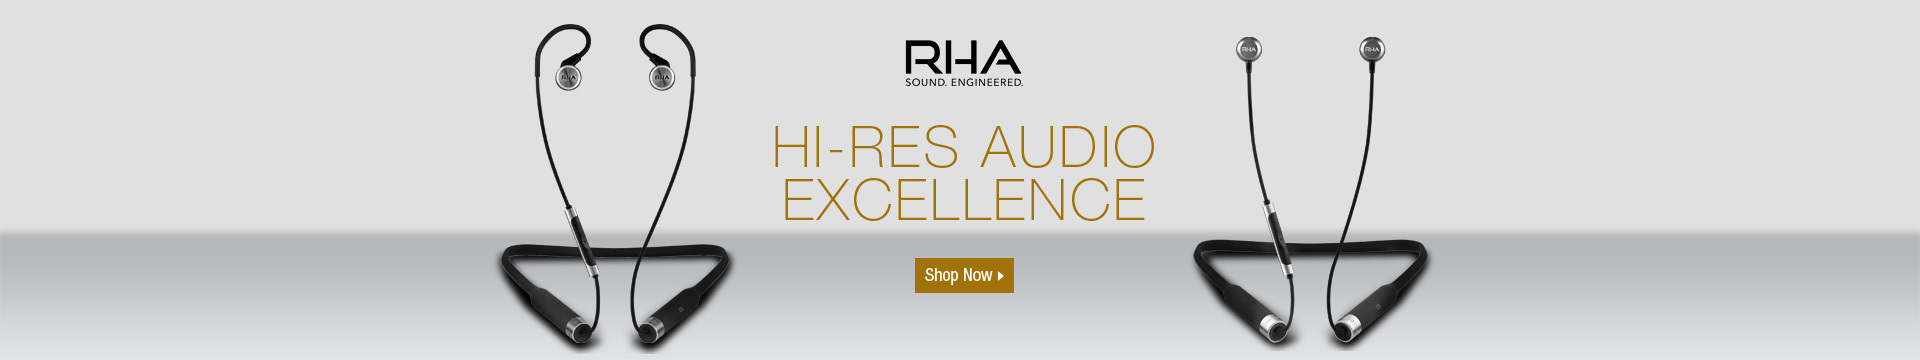 HI-RES AUDIO EXCELLENCE